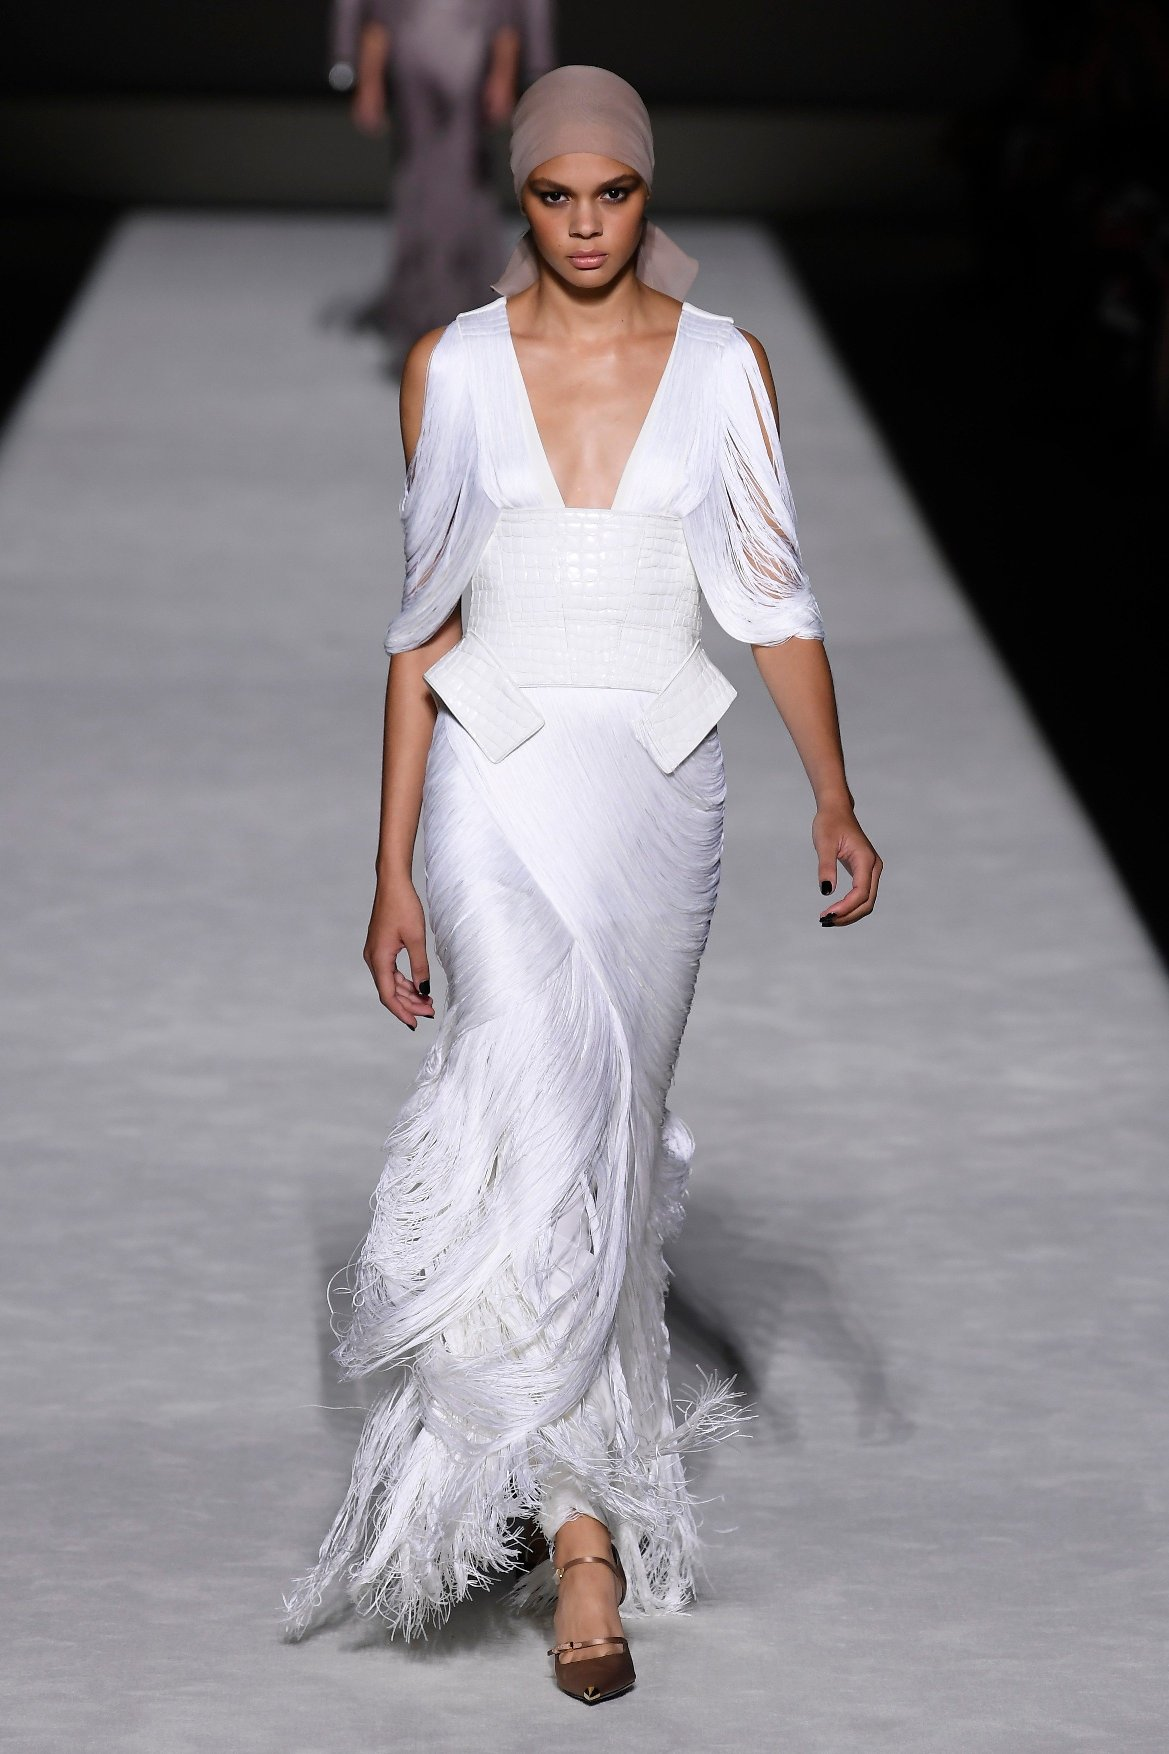 Model on the catwalk Tom Ford show, Runway, Spring Summer 2019, New York Fashion Week, USA - 05 Sep 2018, Image: 385463306, License: Rights-managed, Restrictions: , Model Release: no, Credit line: Profimedia, TEMP Rex Features